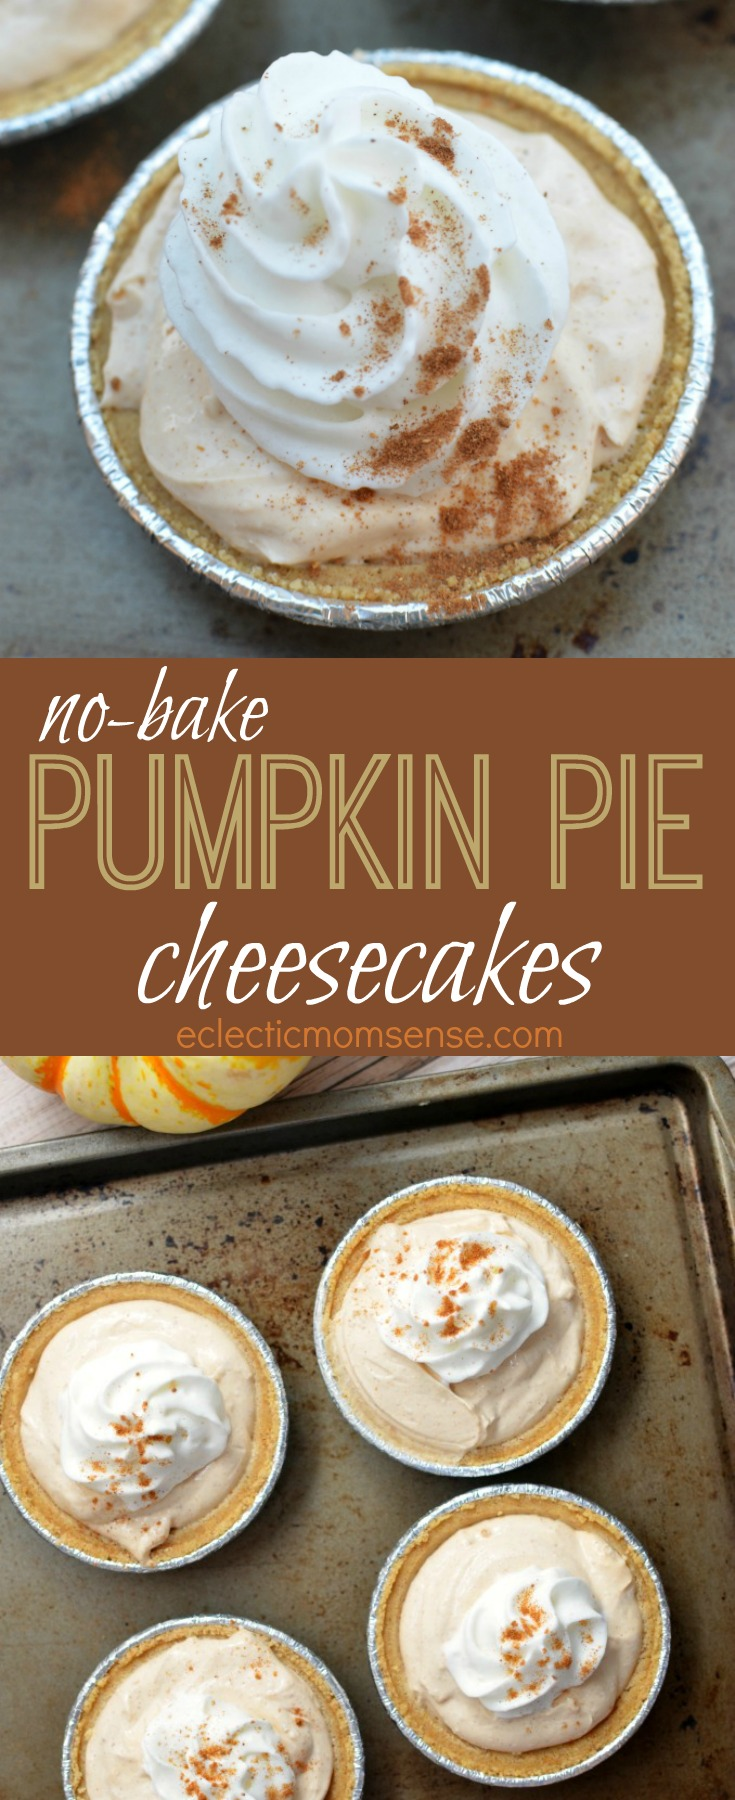 no-bake Pumpkin Pie Cheesecakes | Easy as 1-2-3! | #recipe #pumpkin #fall #cheesecake